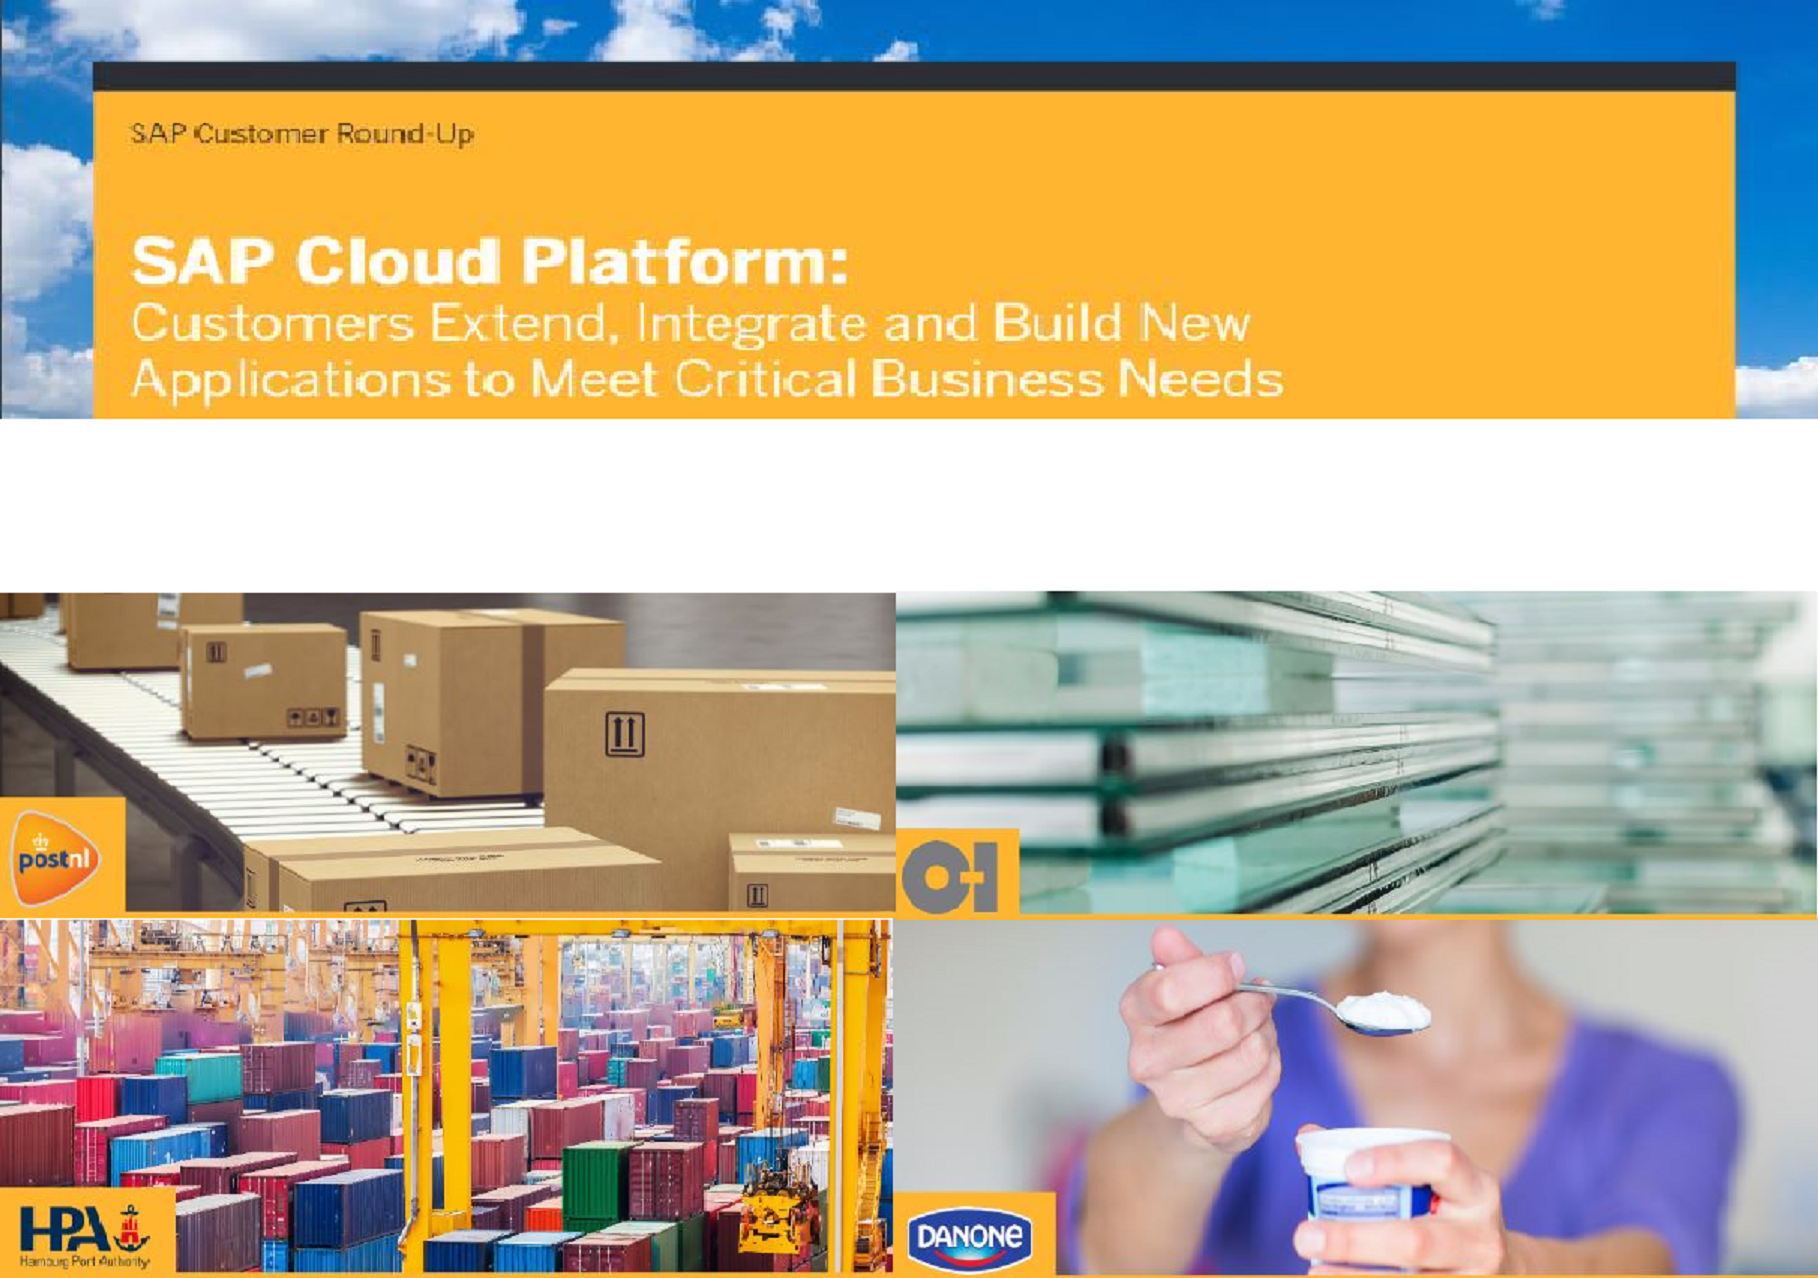 CUSTOMERS EXTEND, INTEGRATE AND BUILD NEW APPLICATIONS TO MEET CRITICAL BUSINESS NEEDS